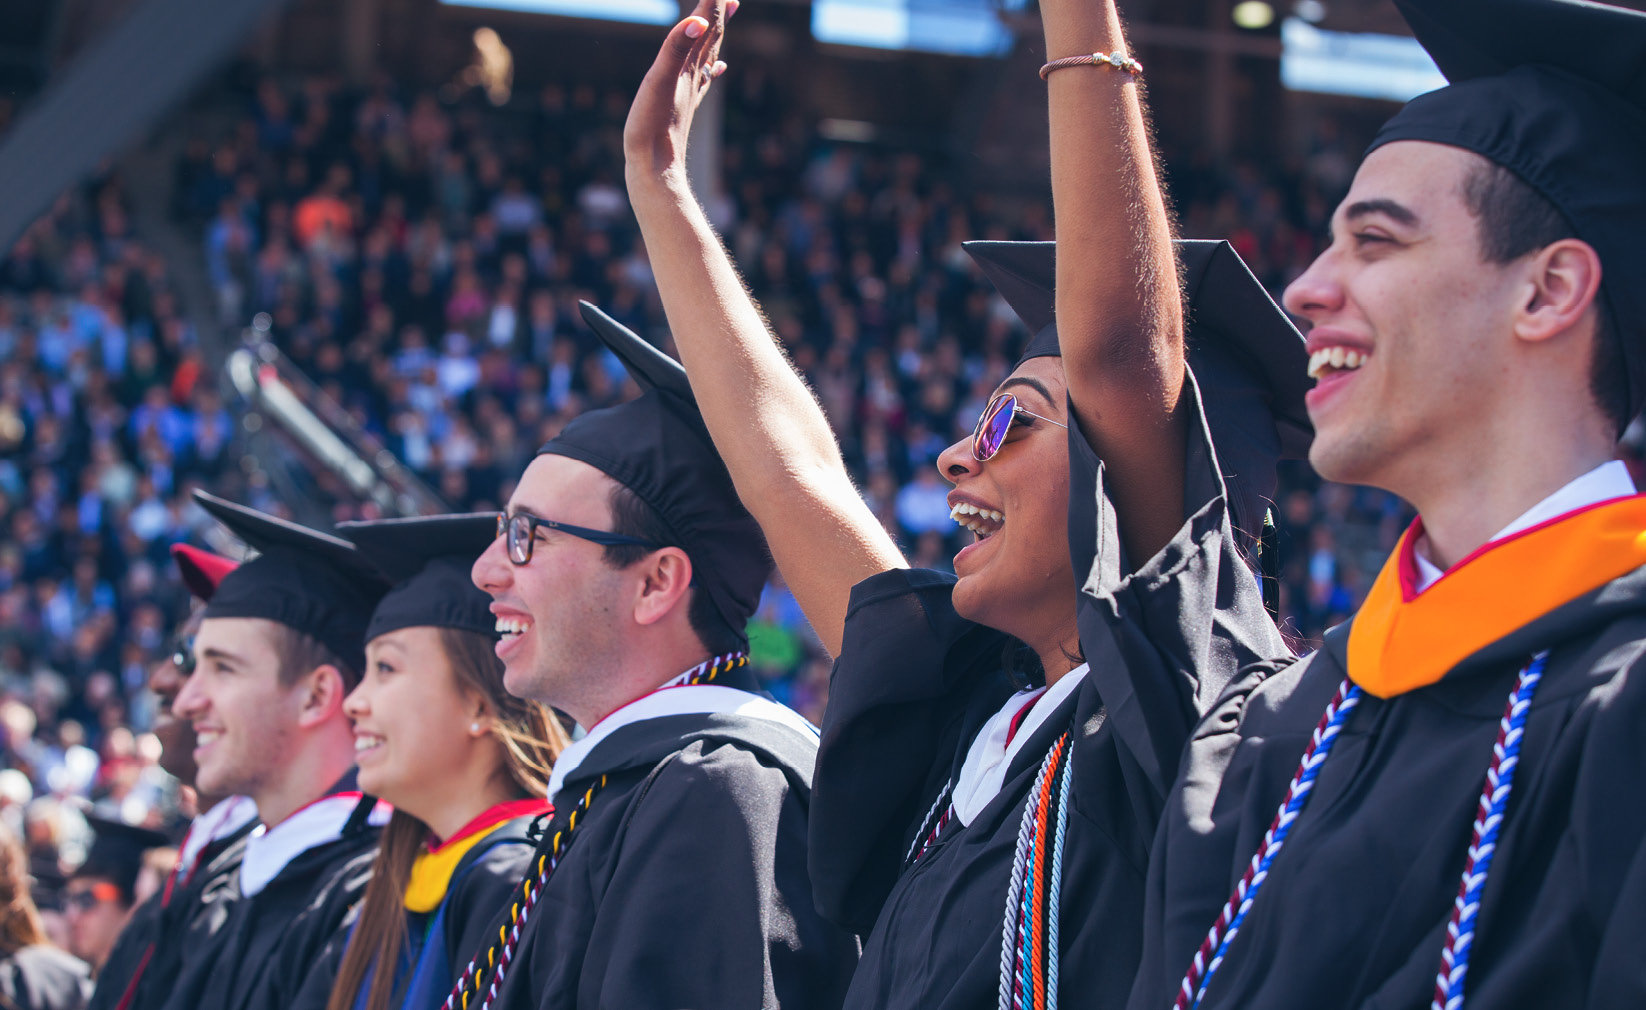 University of Pennsylvania graduates celebrate the accomplishments in graduation attire.